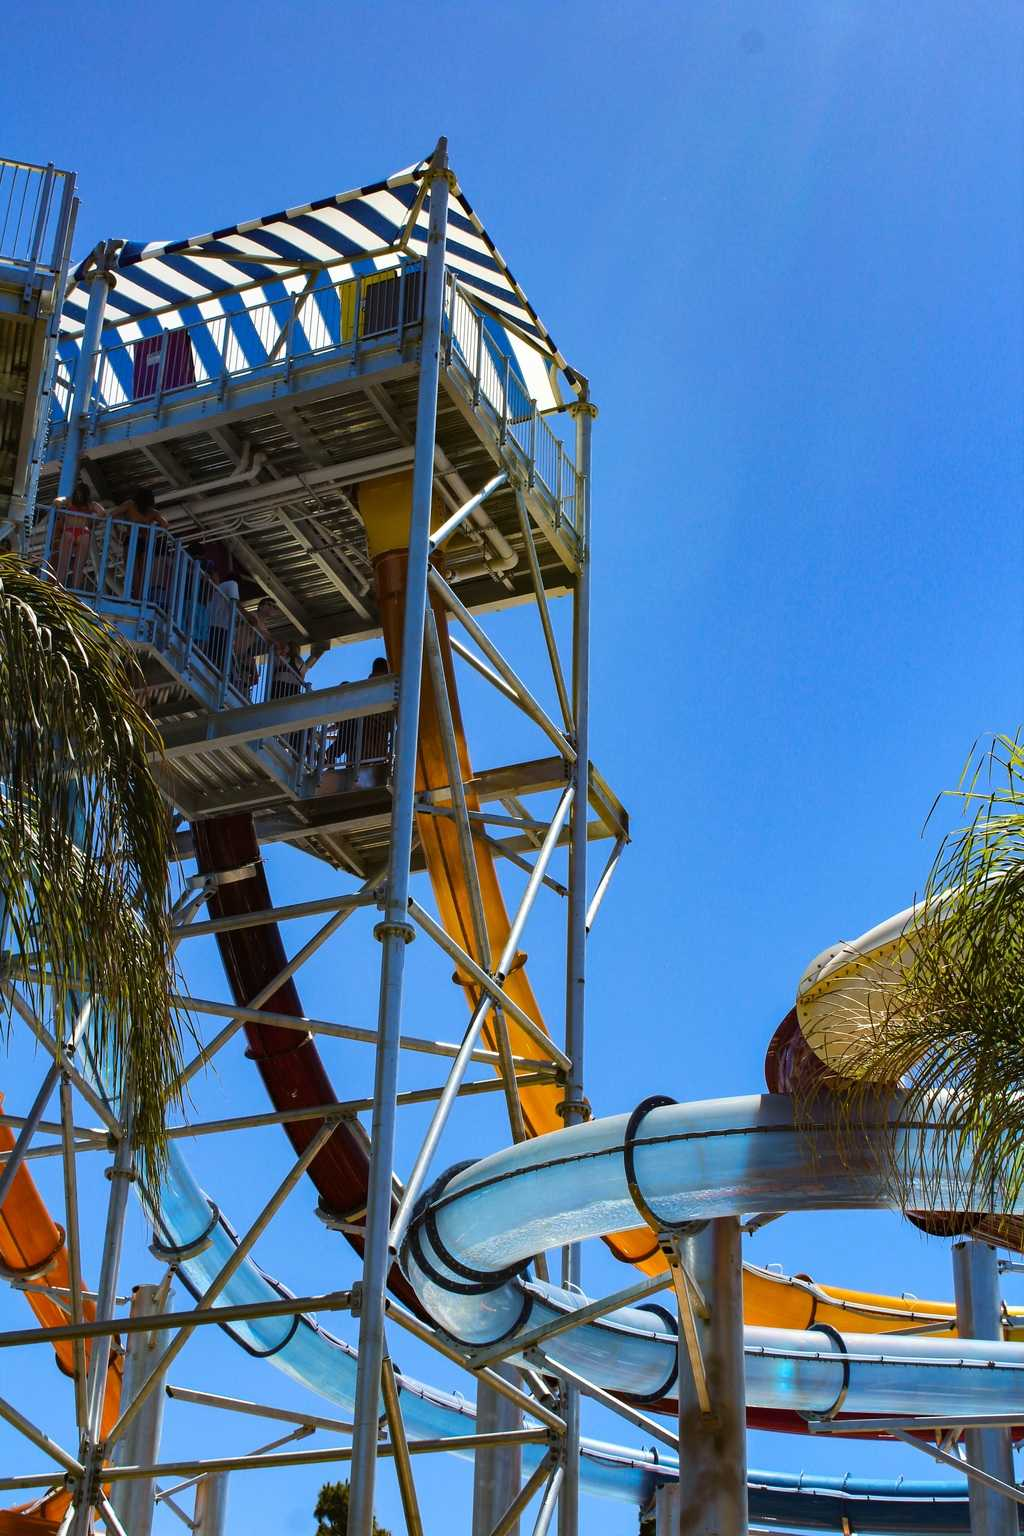 Knott's soak city buena park discount coupons